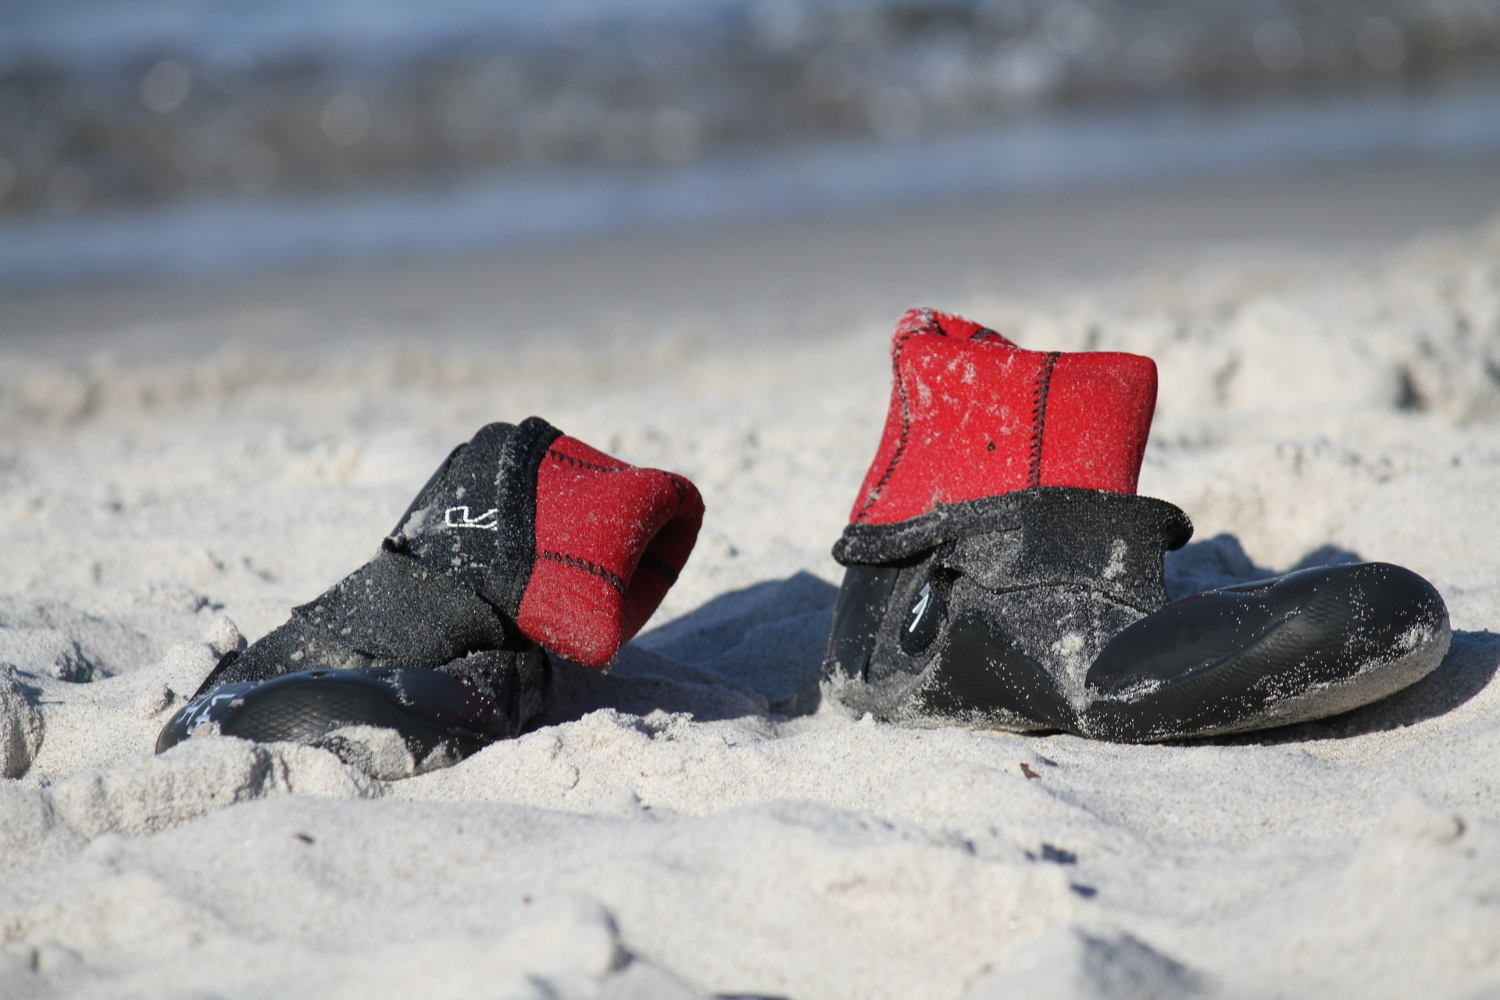 wetsuit booties sitting in sand